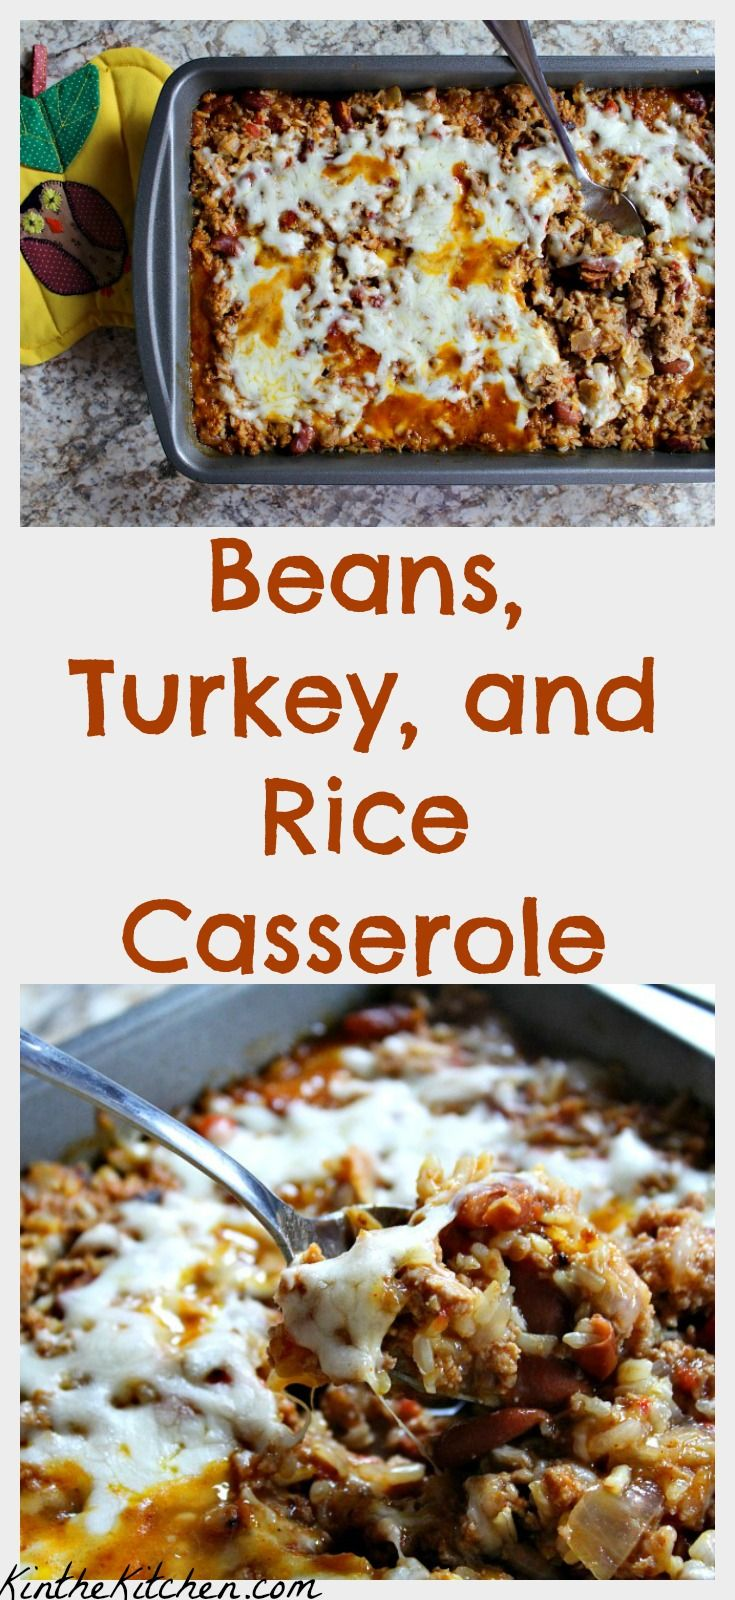 Simple, healthy, delicious, and economical – beans, ground turkey, brown rice, and tomatoes are cooked with seasonings and baked with a light sprinkle of mozzarella cheese.